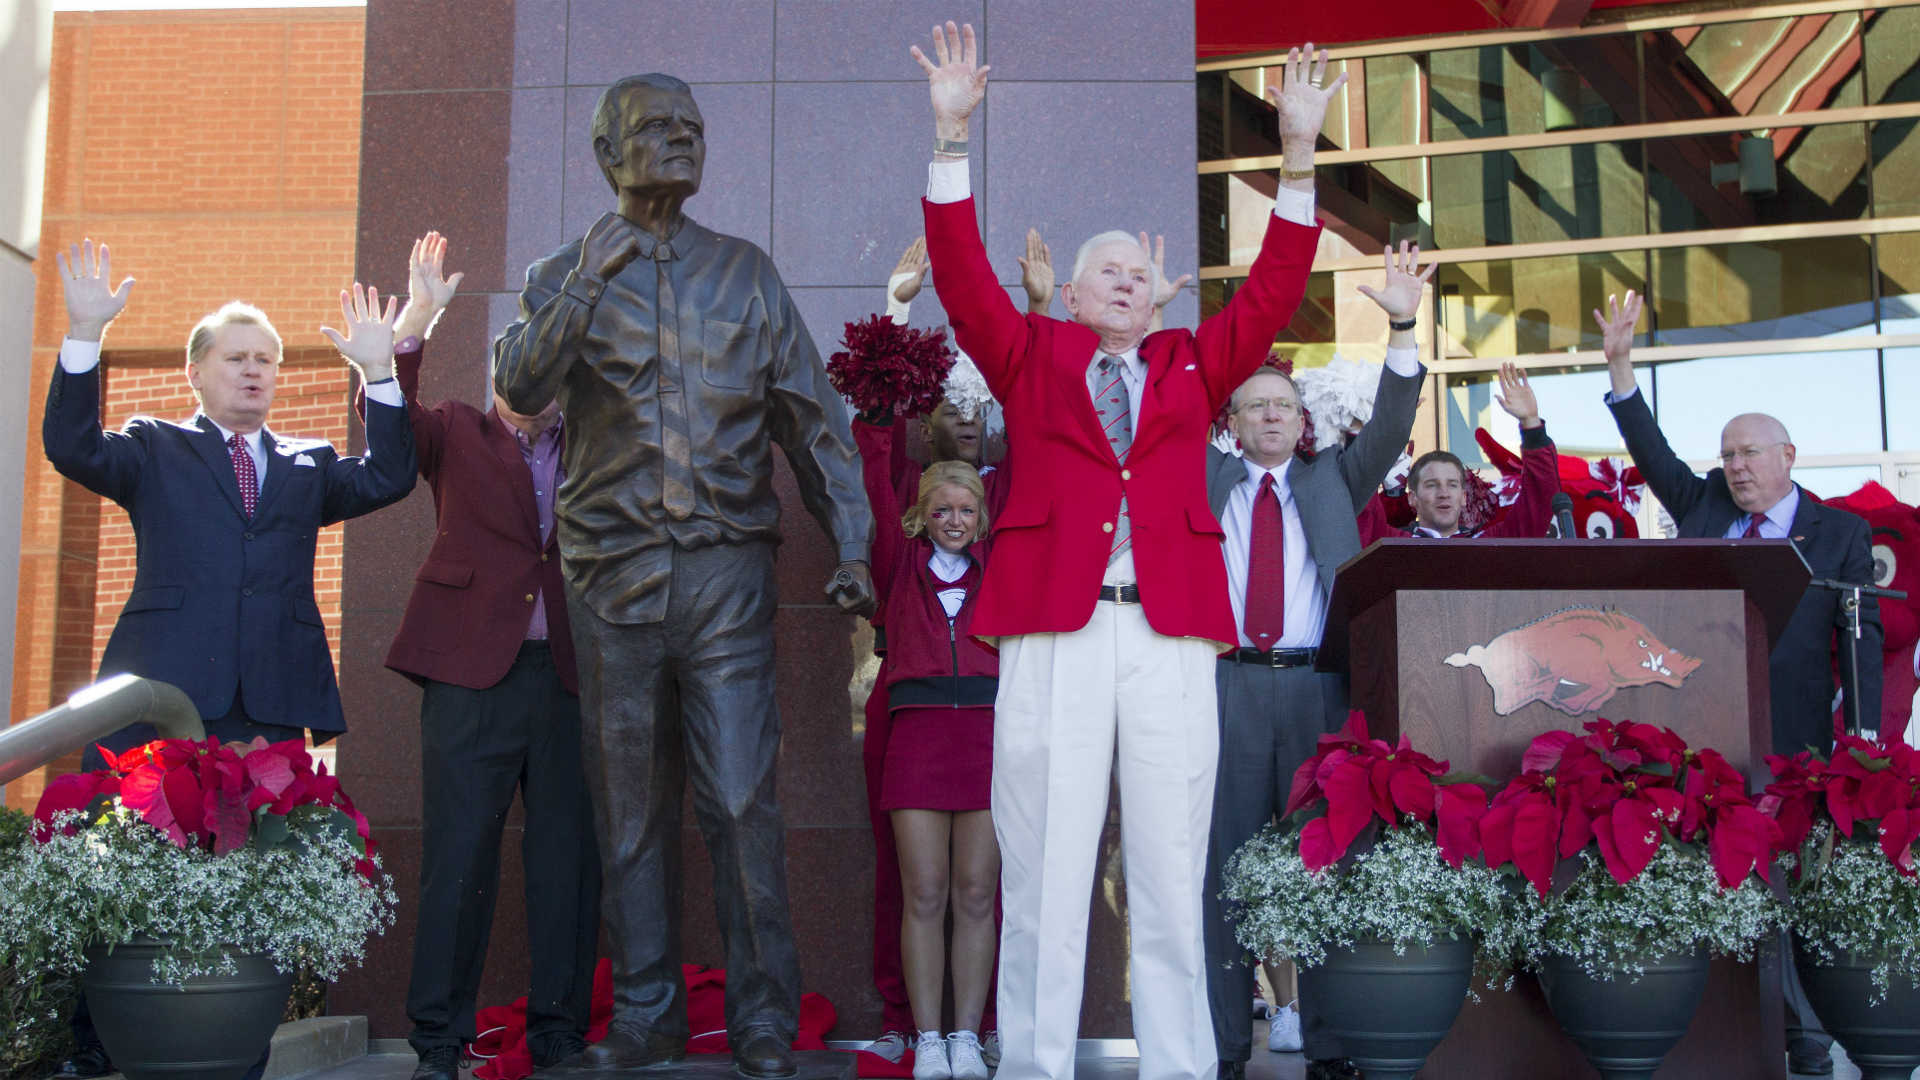 Legendary Arkansas coach Frank Broyles passes away at age 92